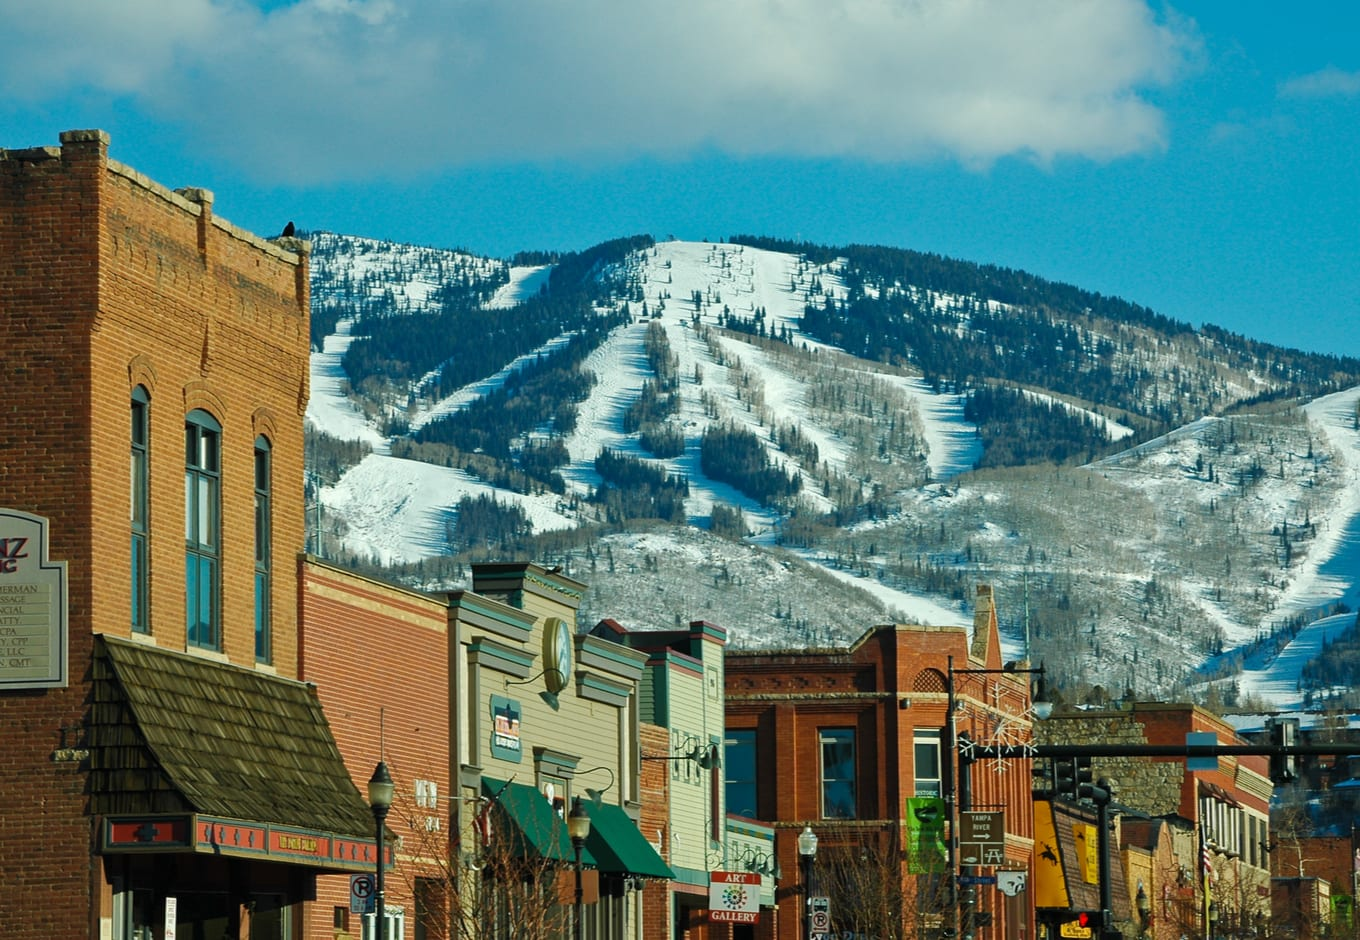 Downtown Steamboat Springs, Colorado, with Mt. Warner ski area in the background.